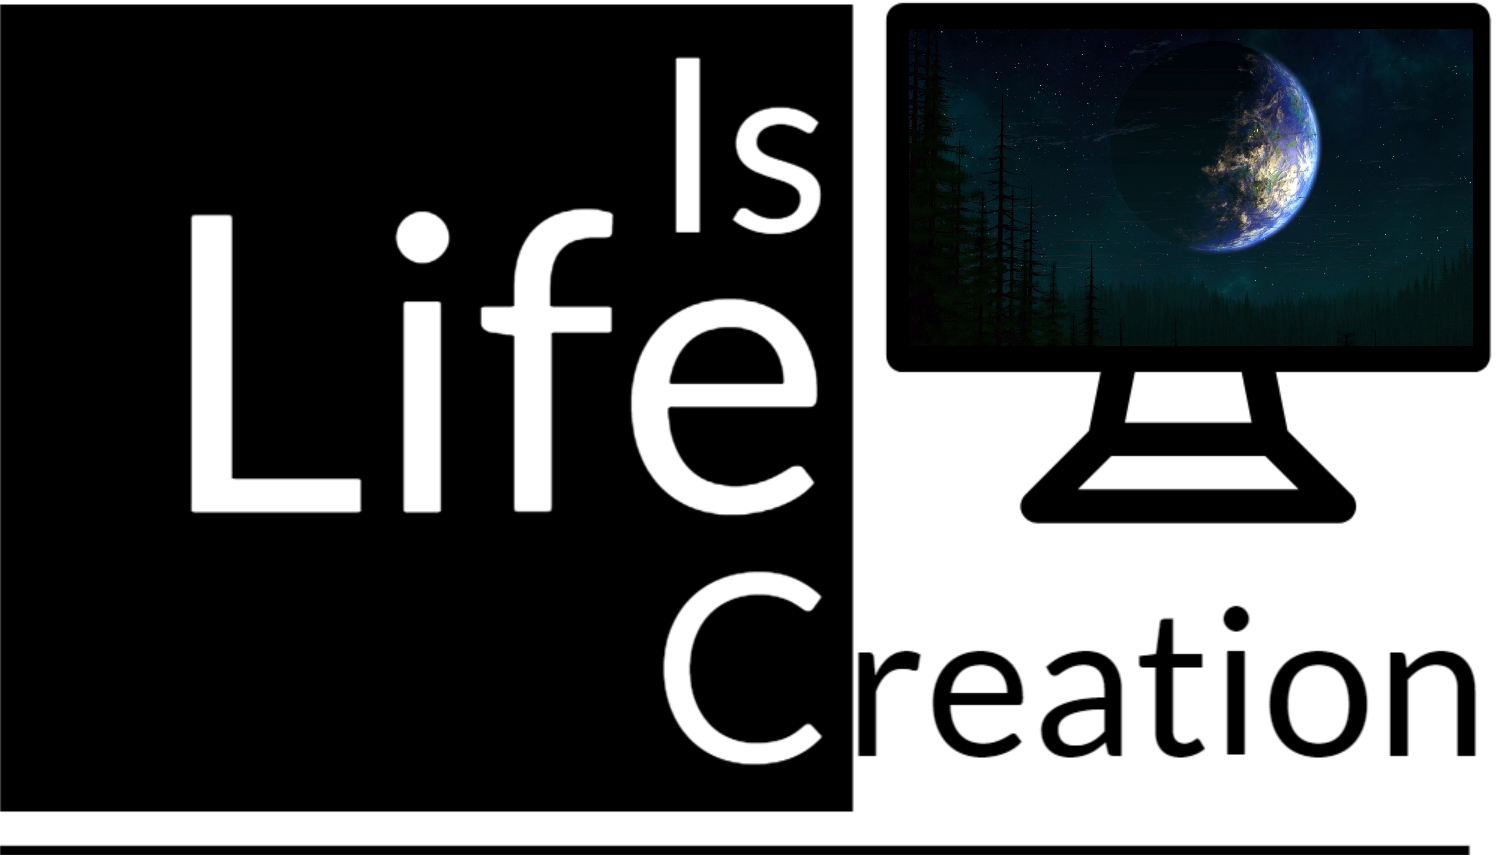 Lifeiscreation The Blog of Akshay Dhanoa